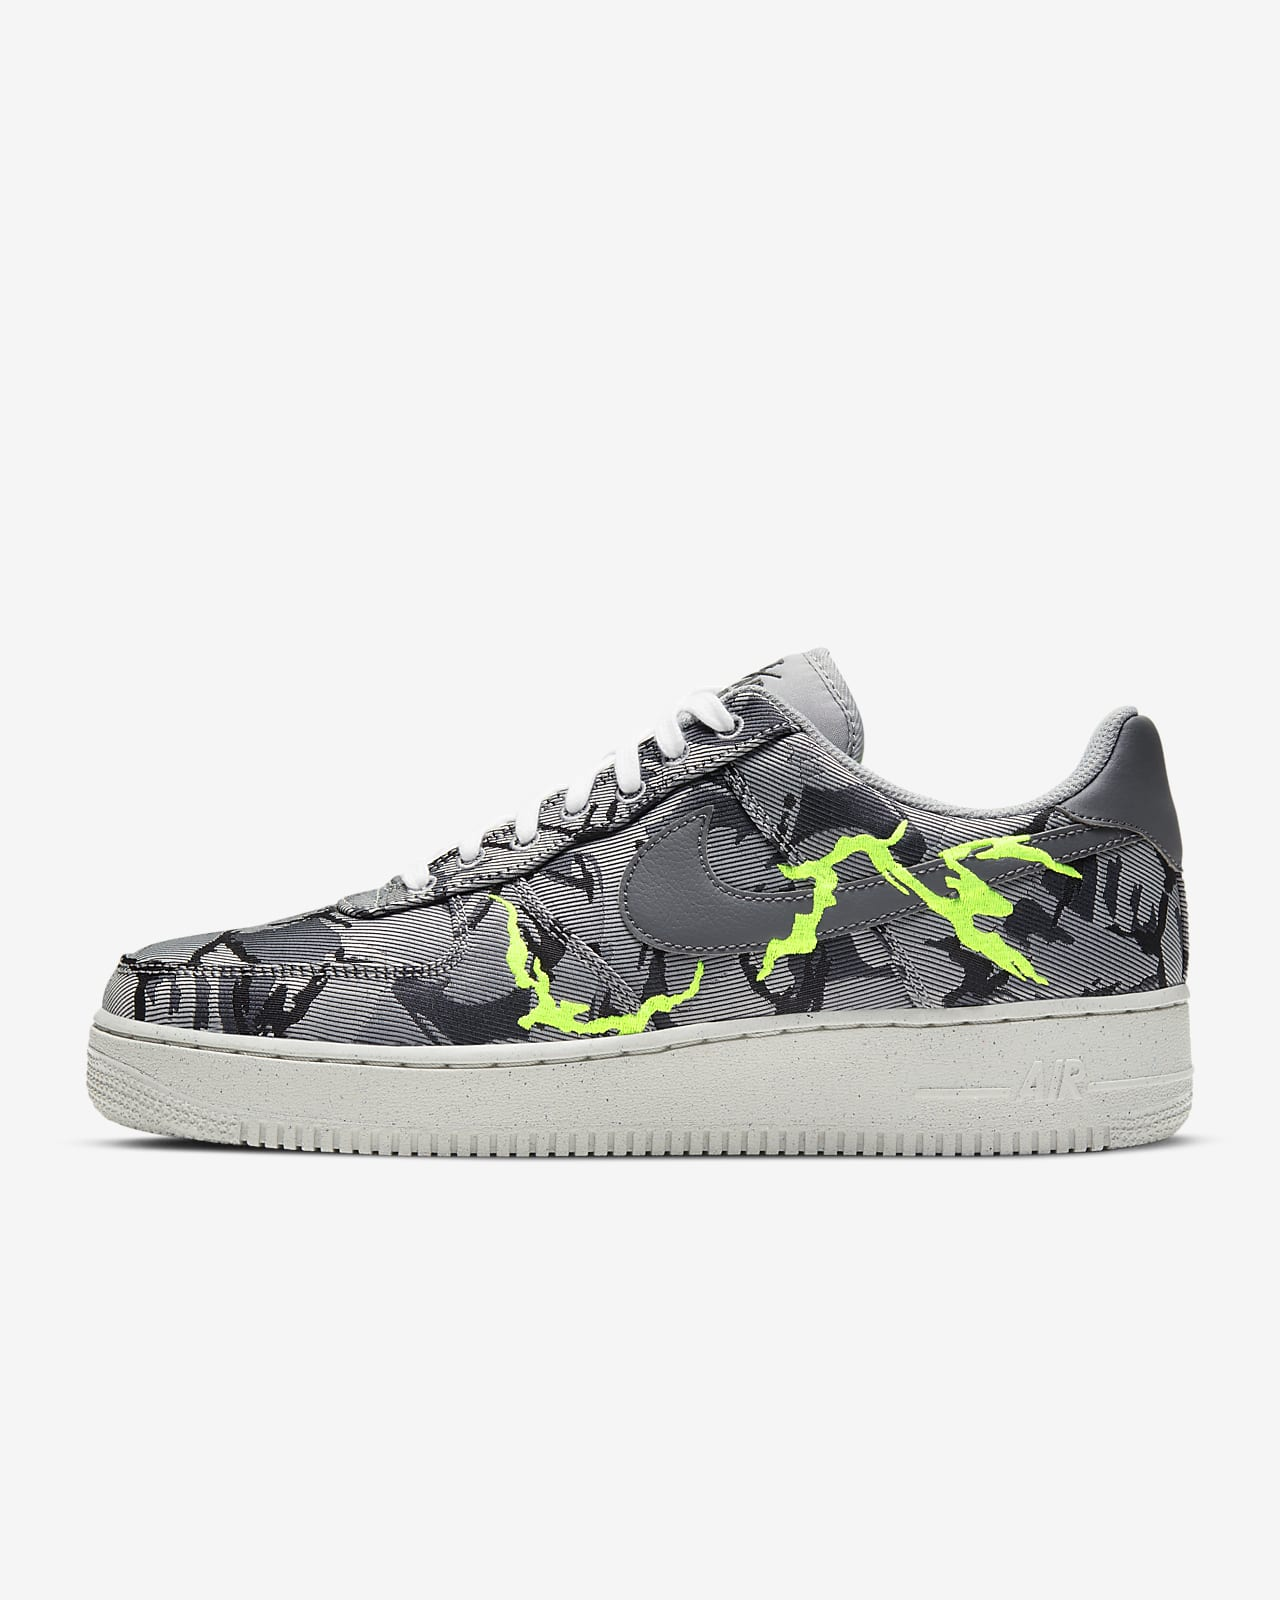 Chaussure Nike Air Force 1 '07 LX pour Homme